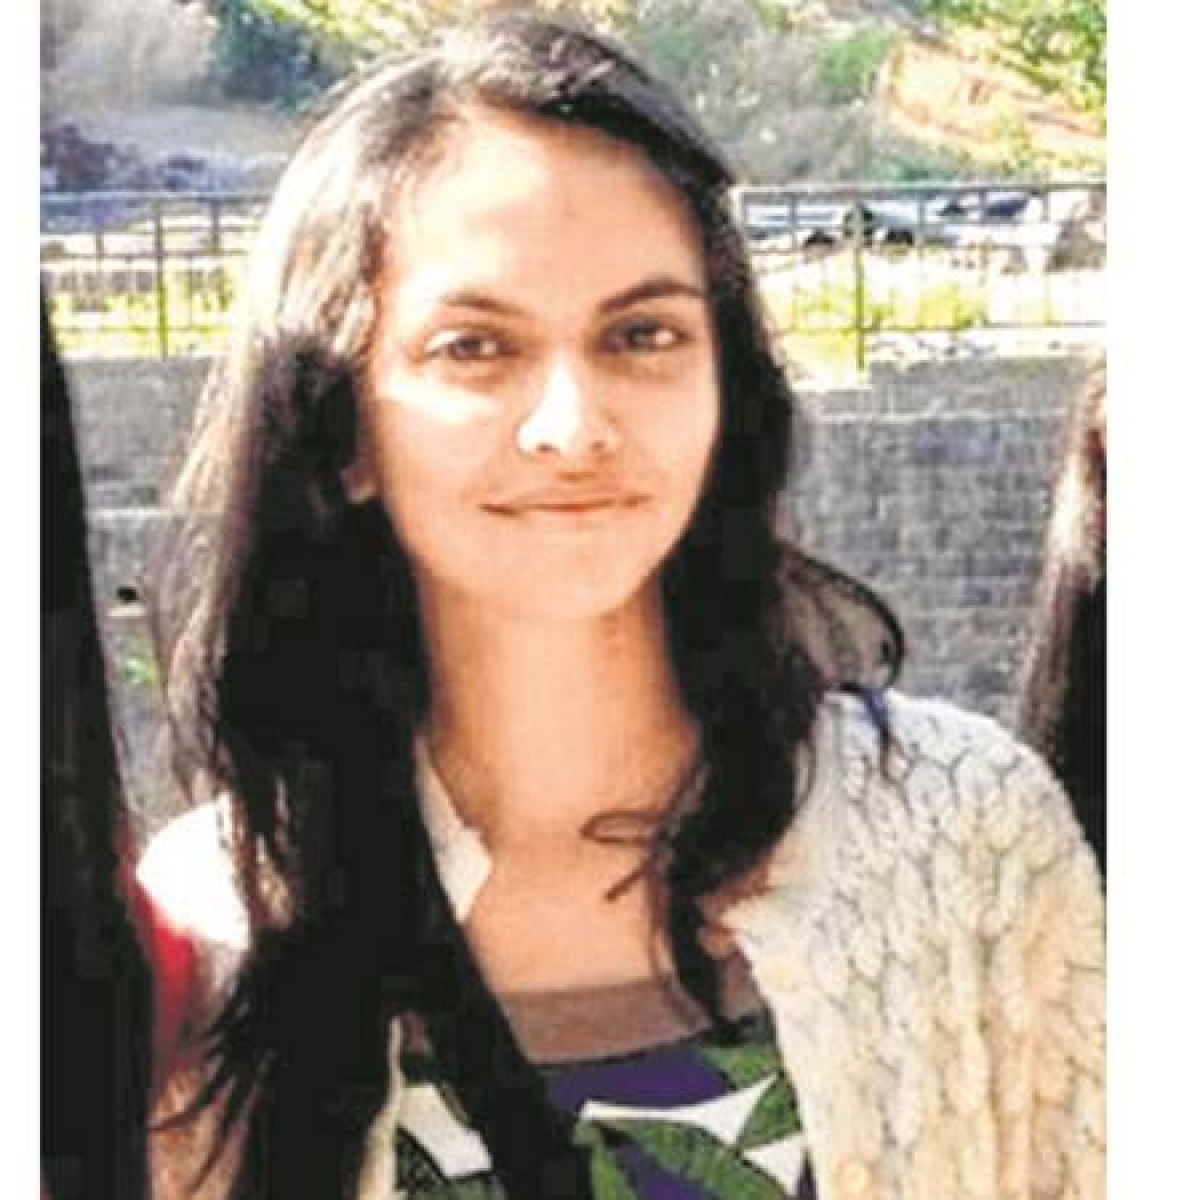 Kirti Vyas case: Court denies bail to murder accused salon staffer